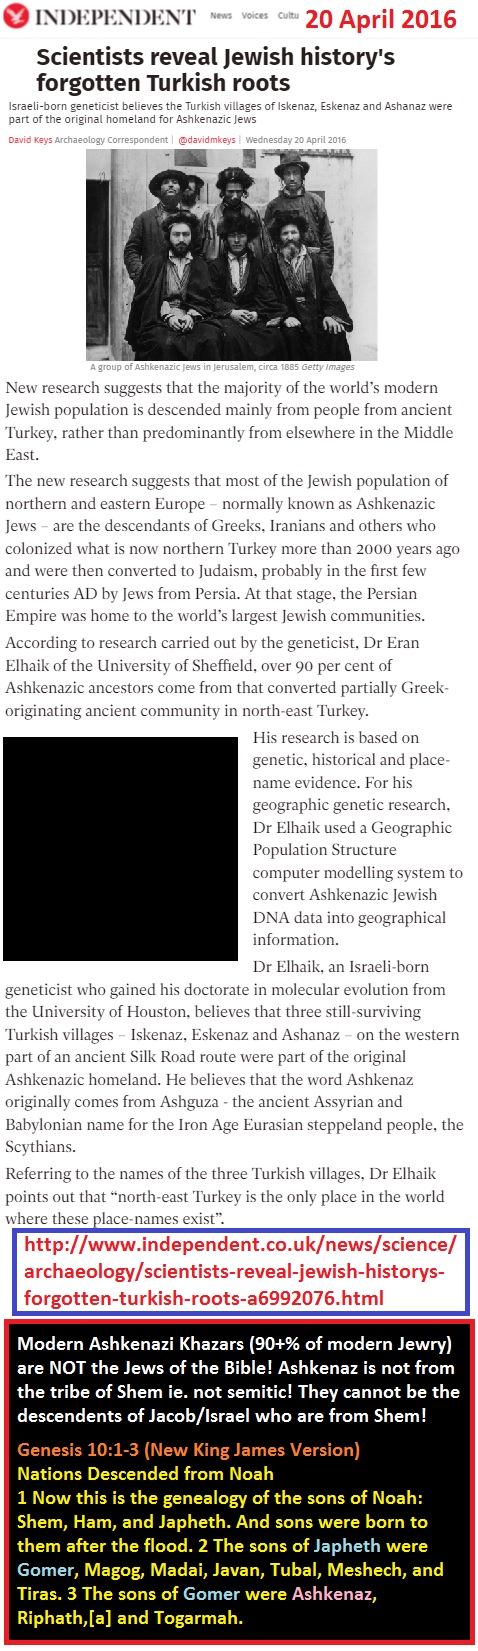 http://www.independent.co.uk/news/science/archaeology/scientists-reveal-jewish-historys-forgotten-turkish-roots-a6992076.html